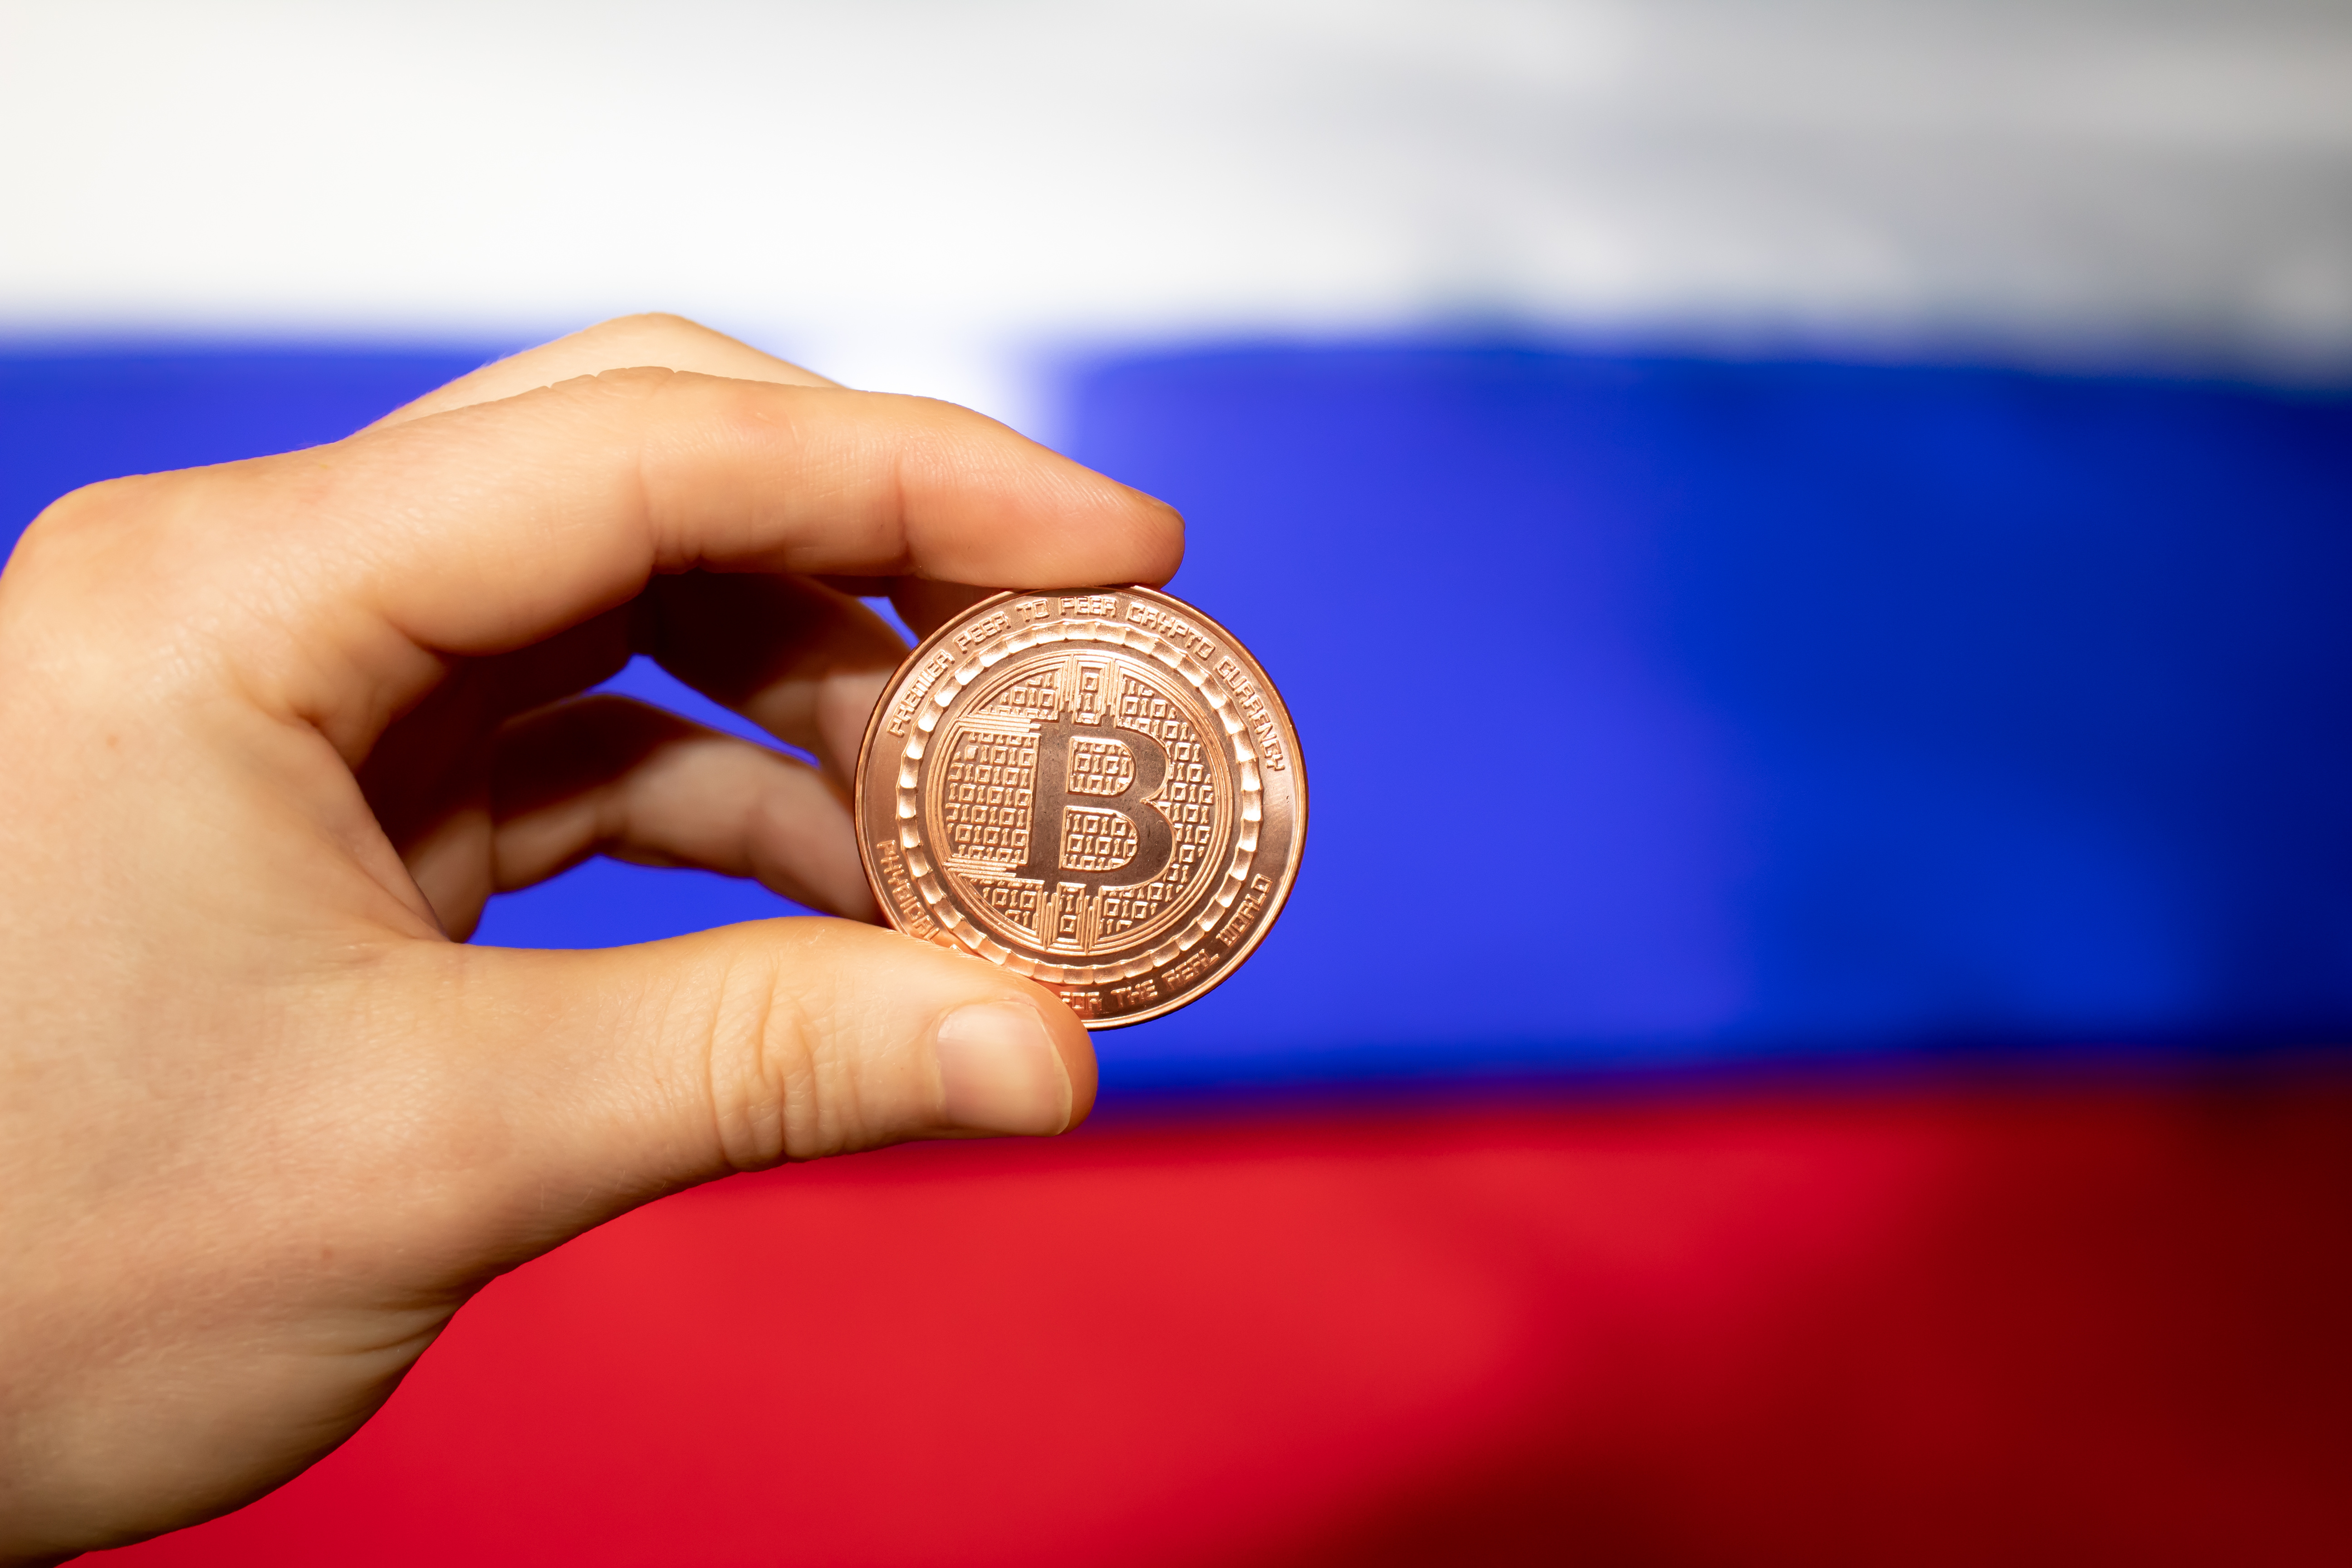 Russia Won't Ban Crypto Trading, Says Deputy Finance Minister